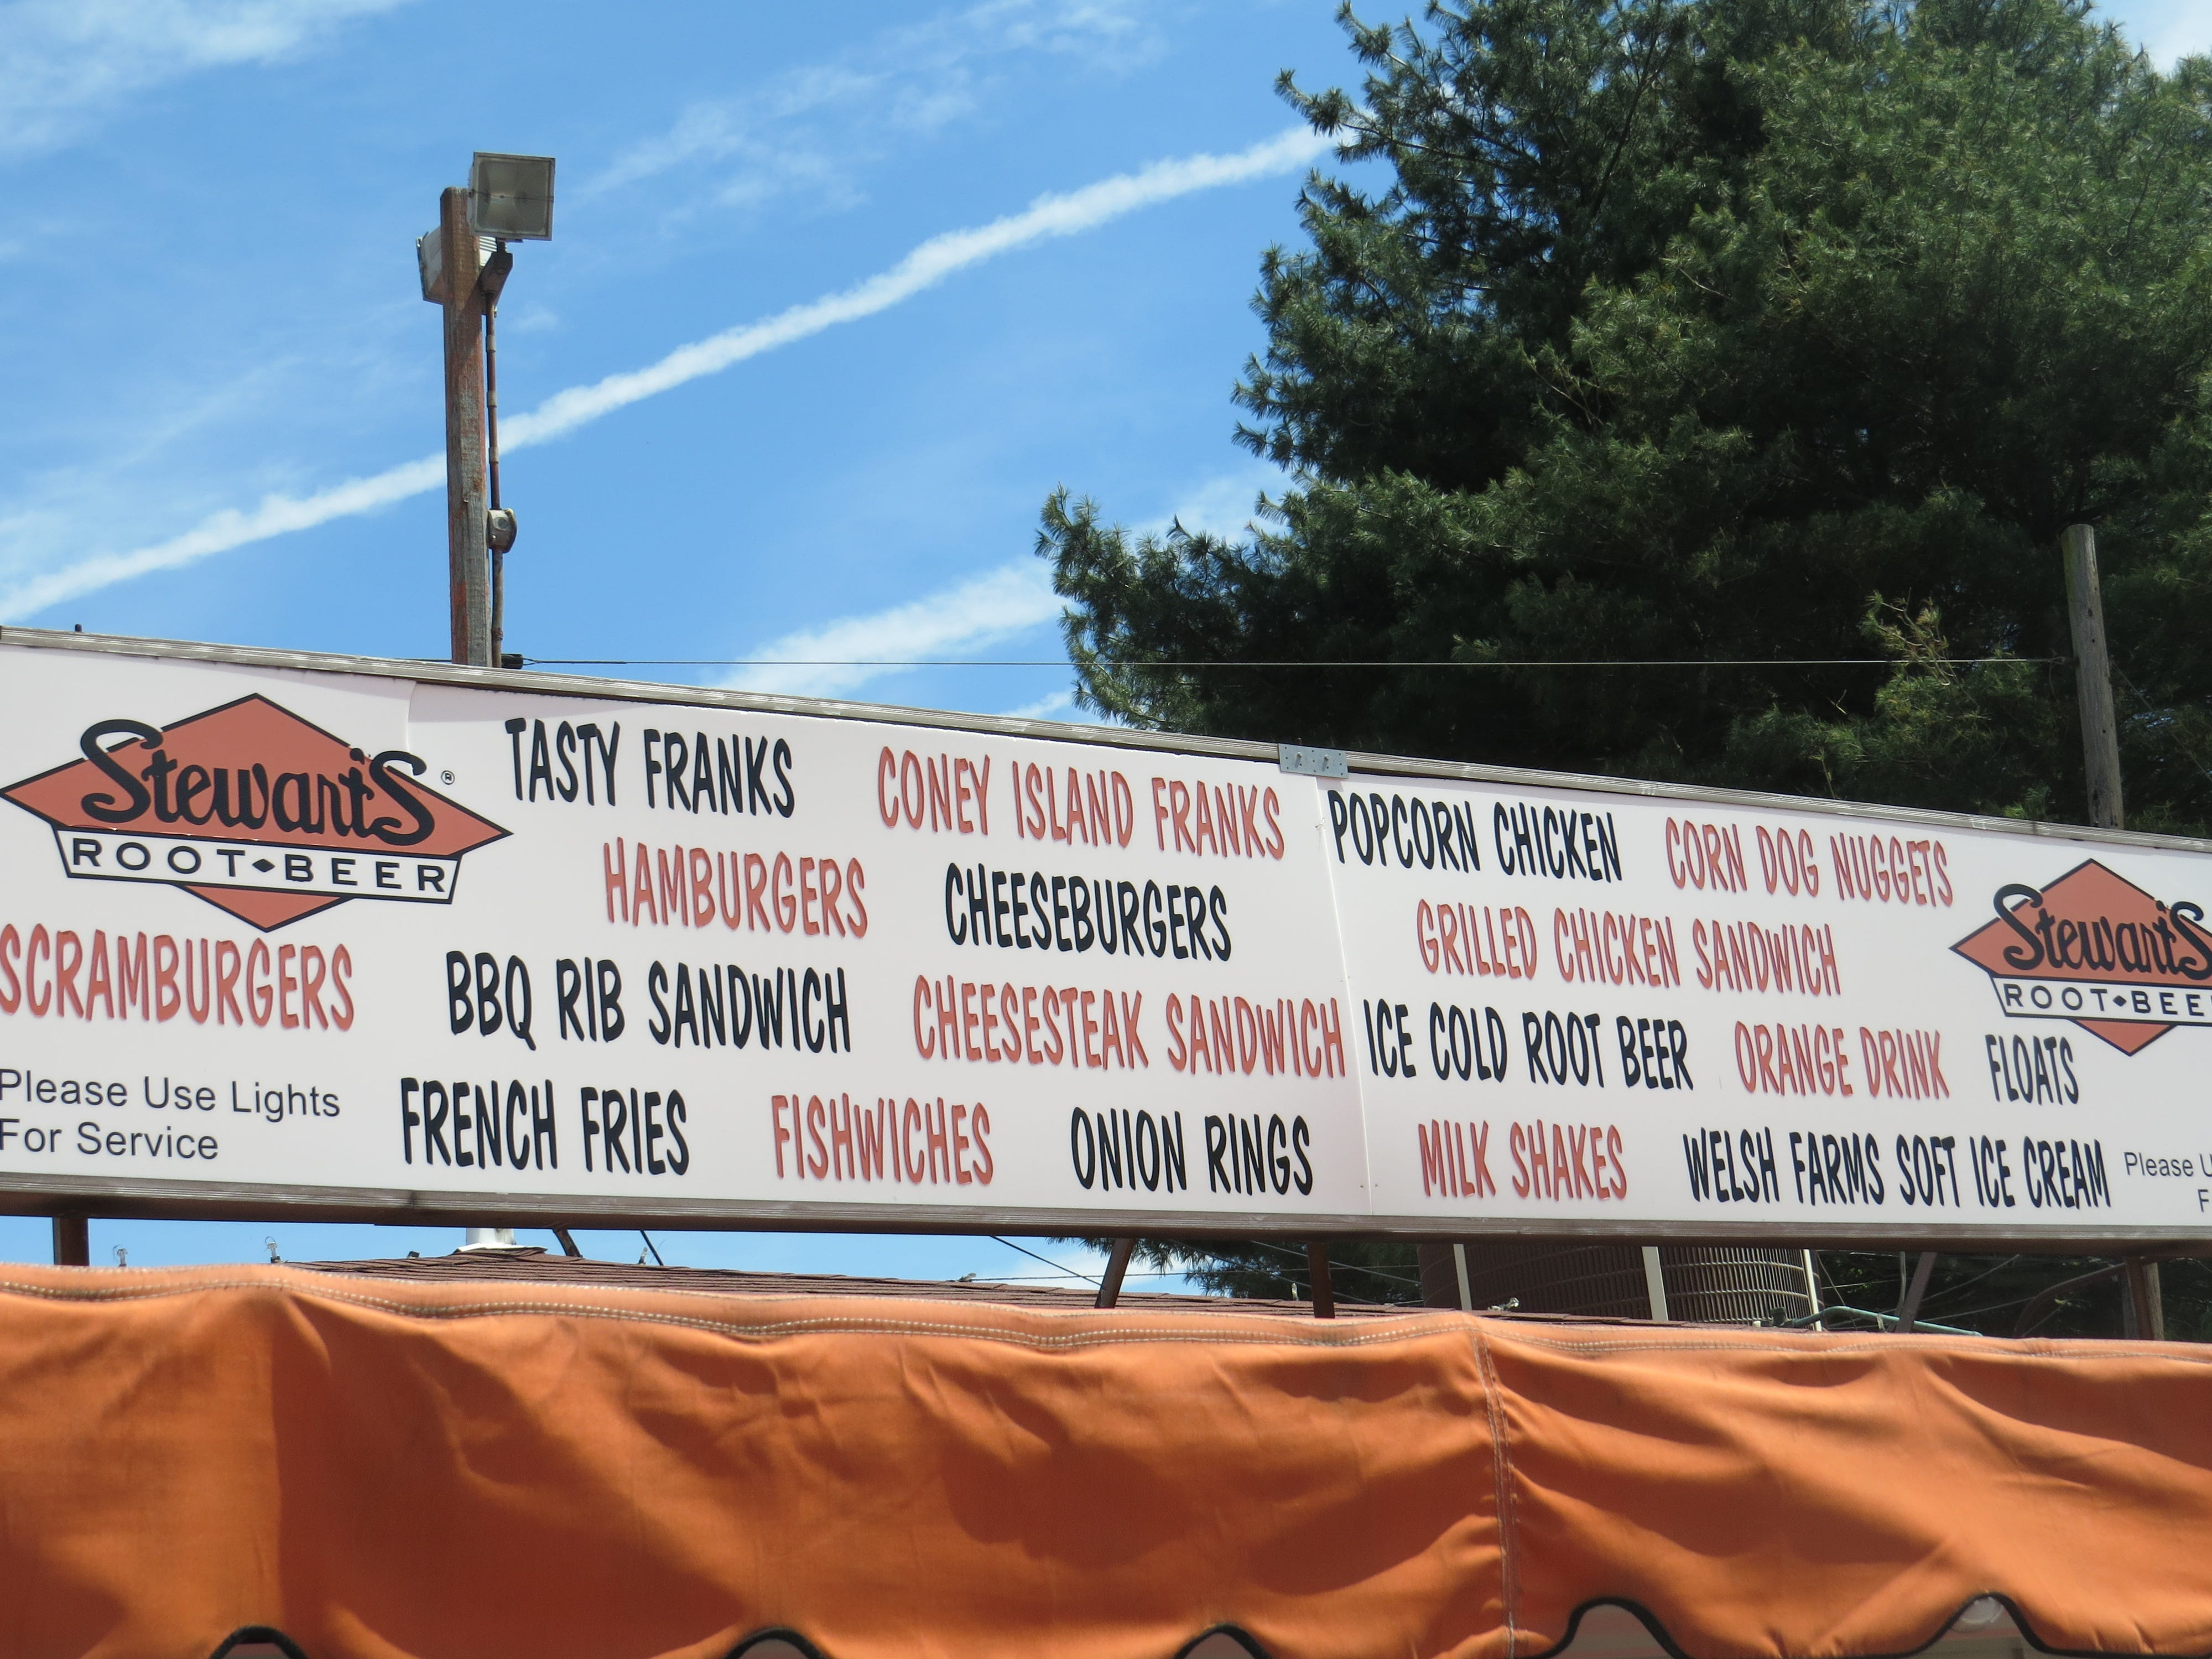 After being closed for all of 2018, the Stewart's Drive-in on Route 46 in Rockaway Township - known as Stewart's of Dover - has reopened for the 2019 season. May 7, 2019.